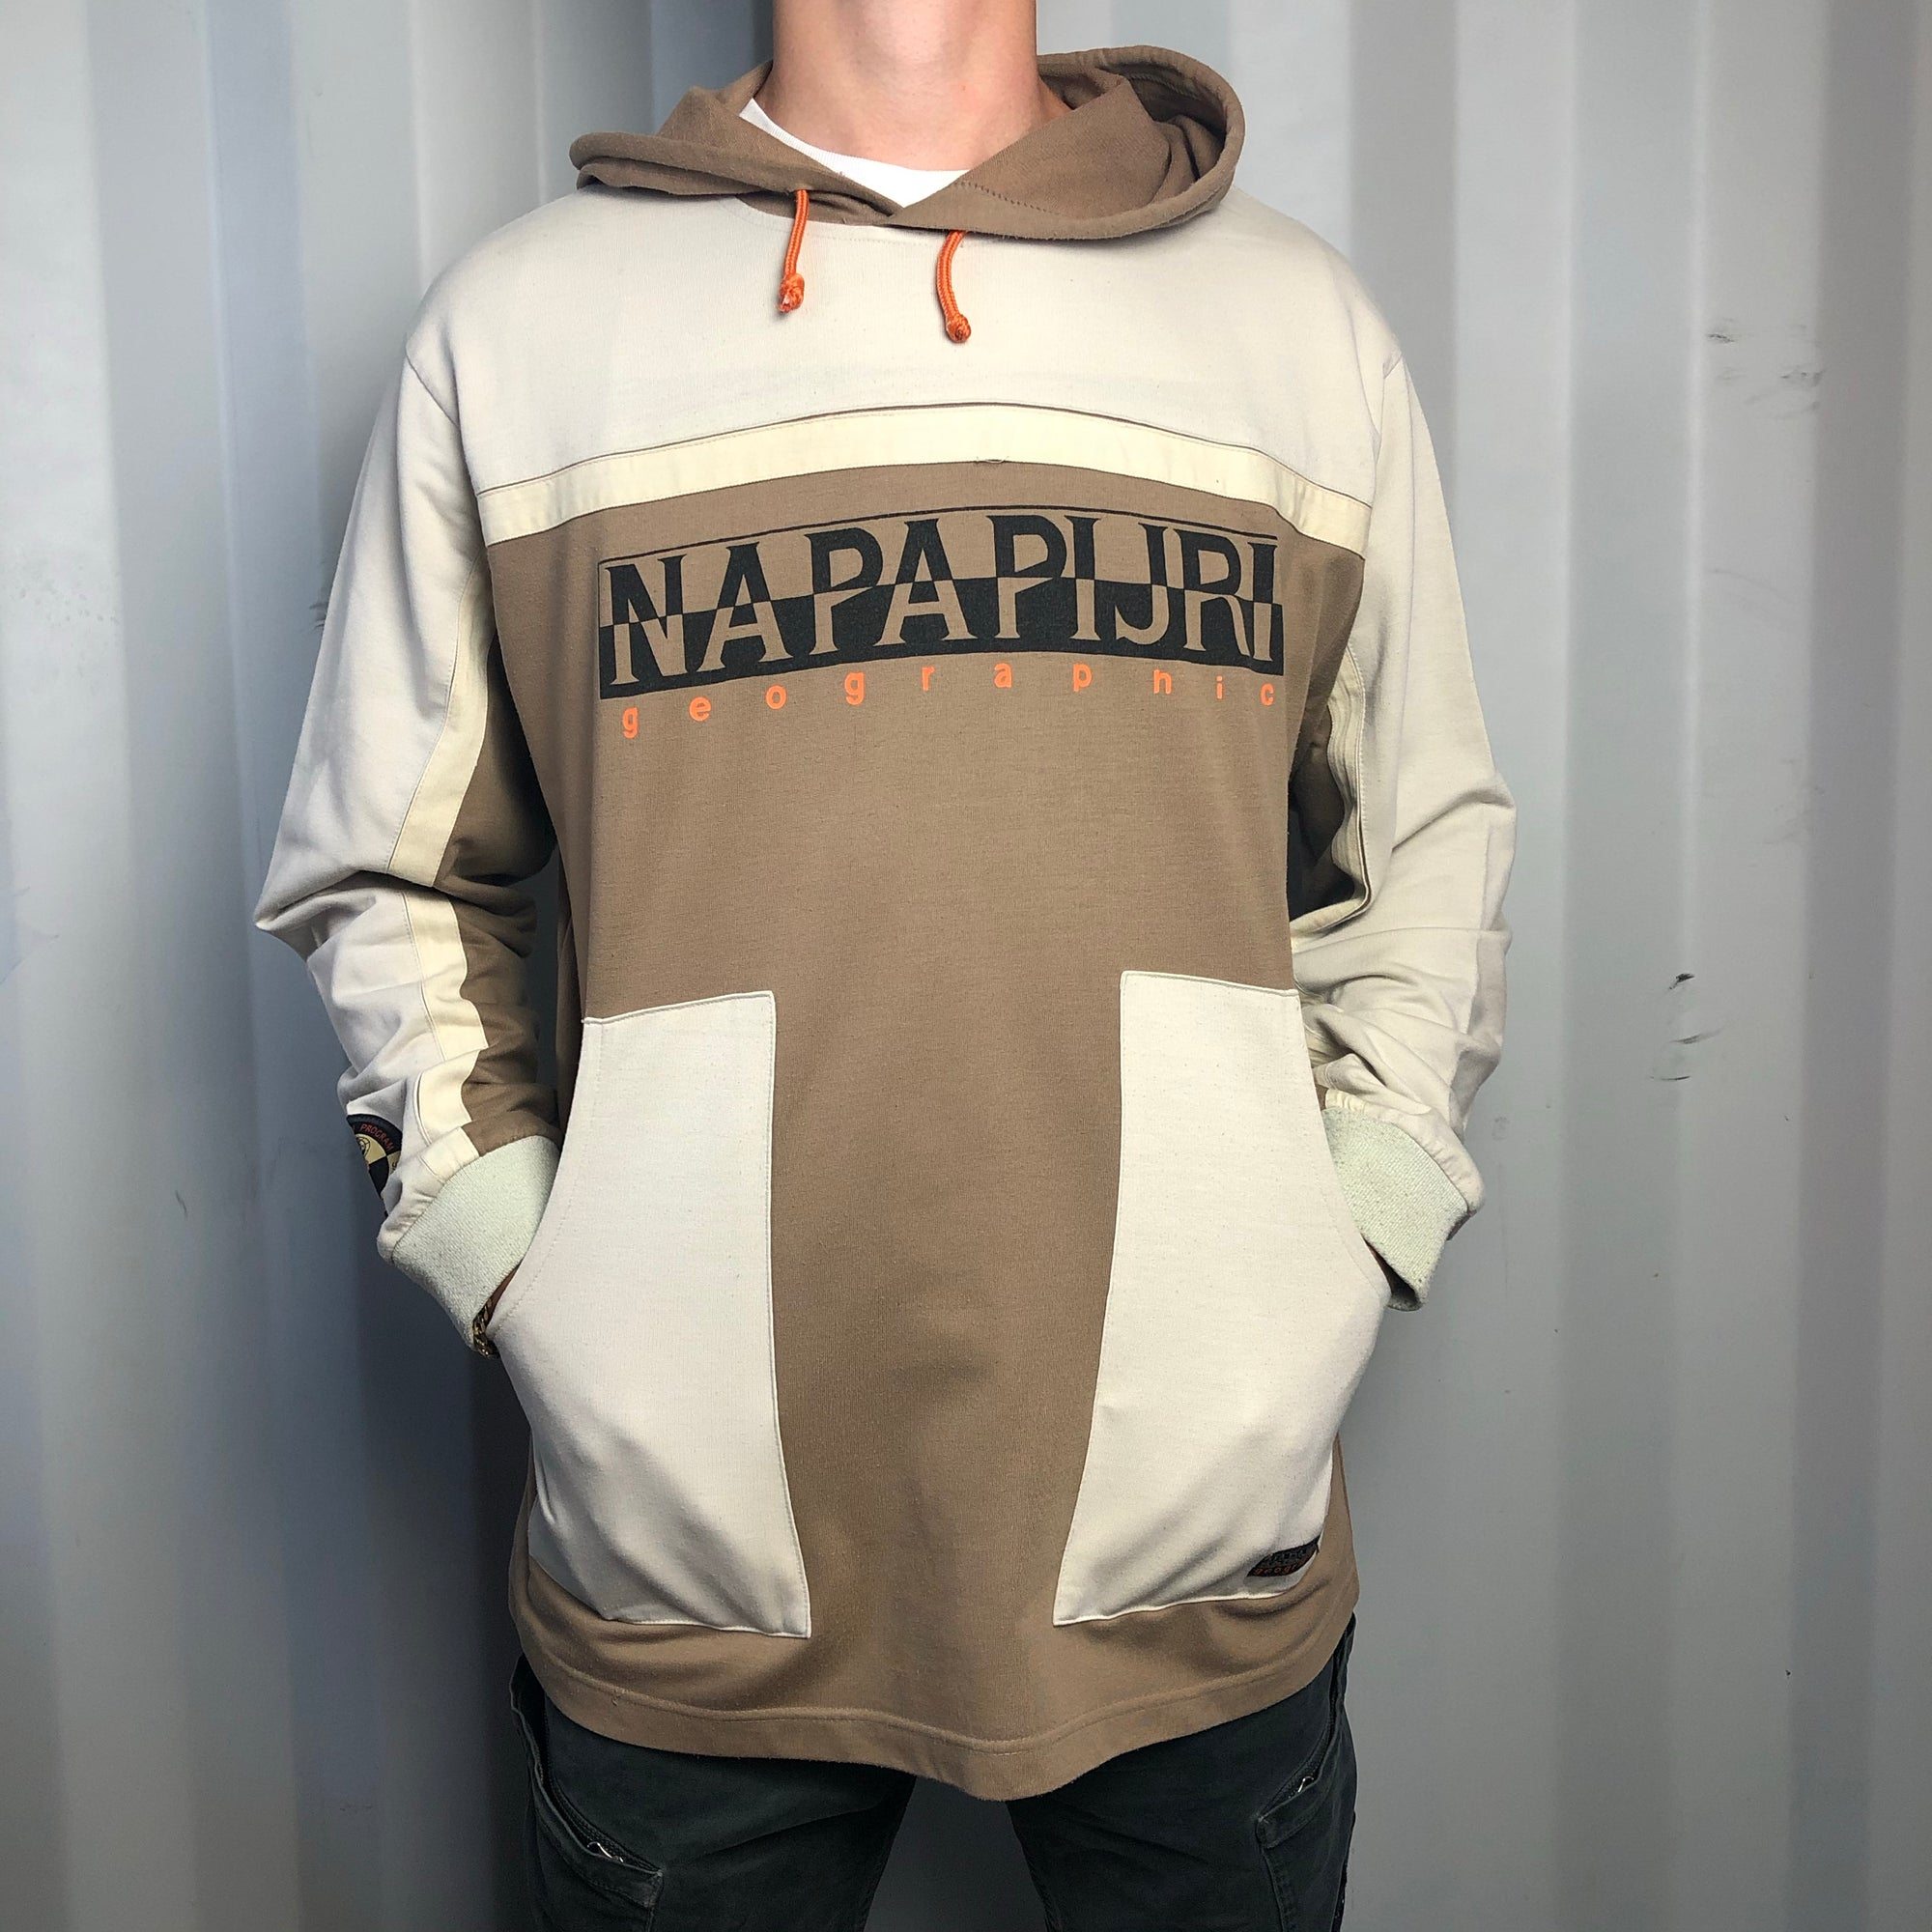 Vintage Napapijri Spellout Hoodie - Antarctic Research Program